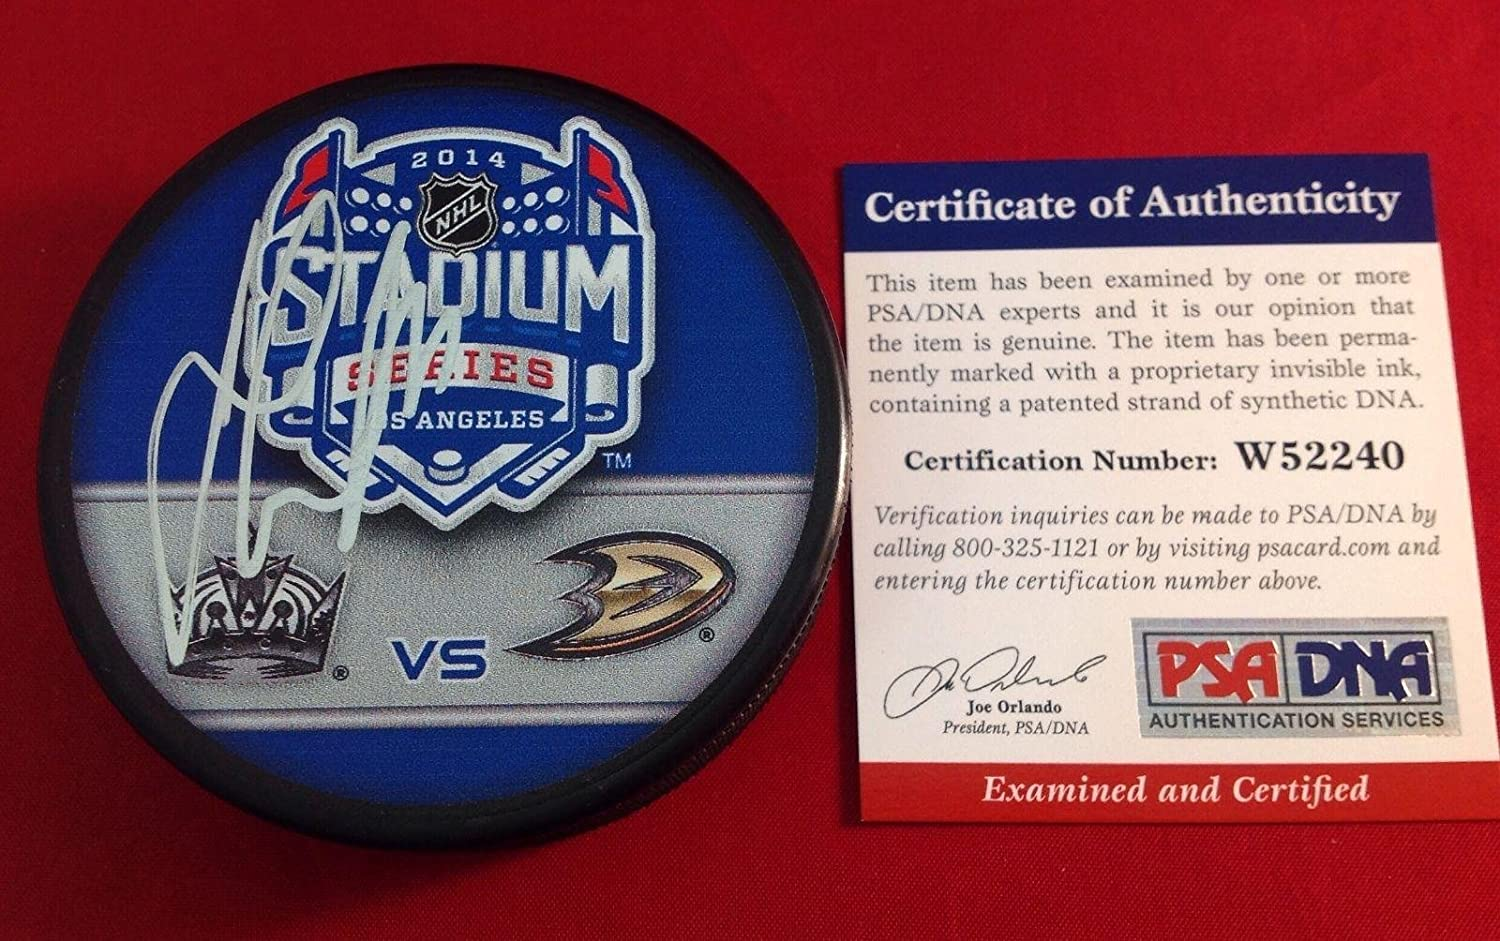 Jeff Carter Signed Hockey Puck - 2014 Stadium Series Cert# W52240 - PSA/DNA Certified - Autographed NHL Pucks